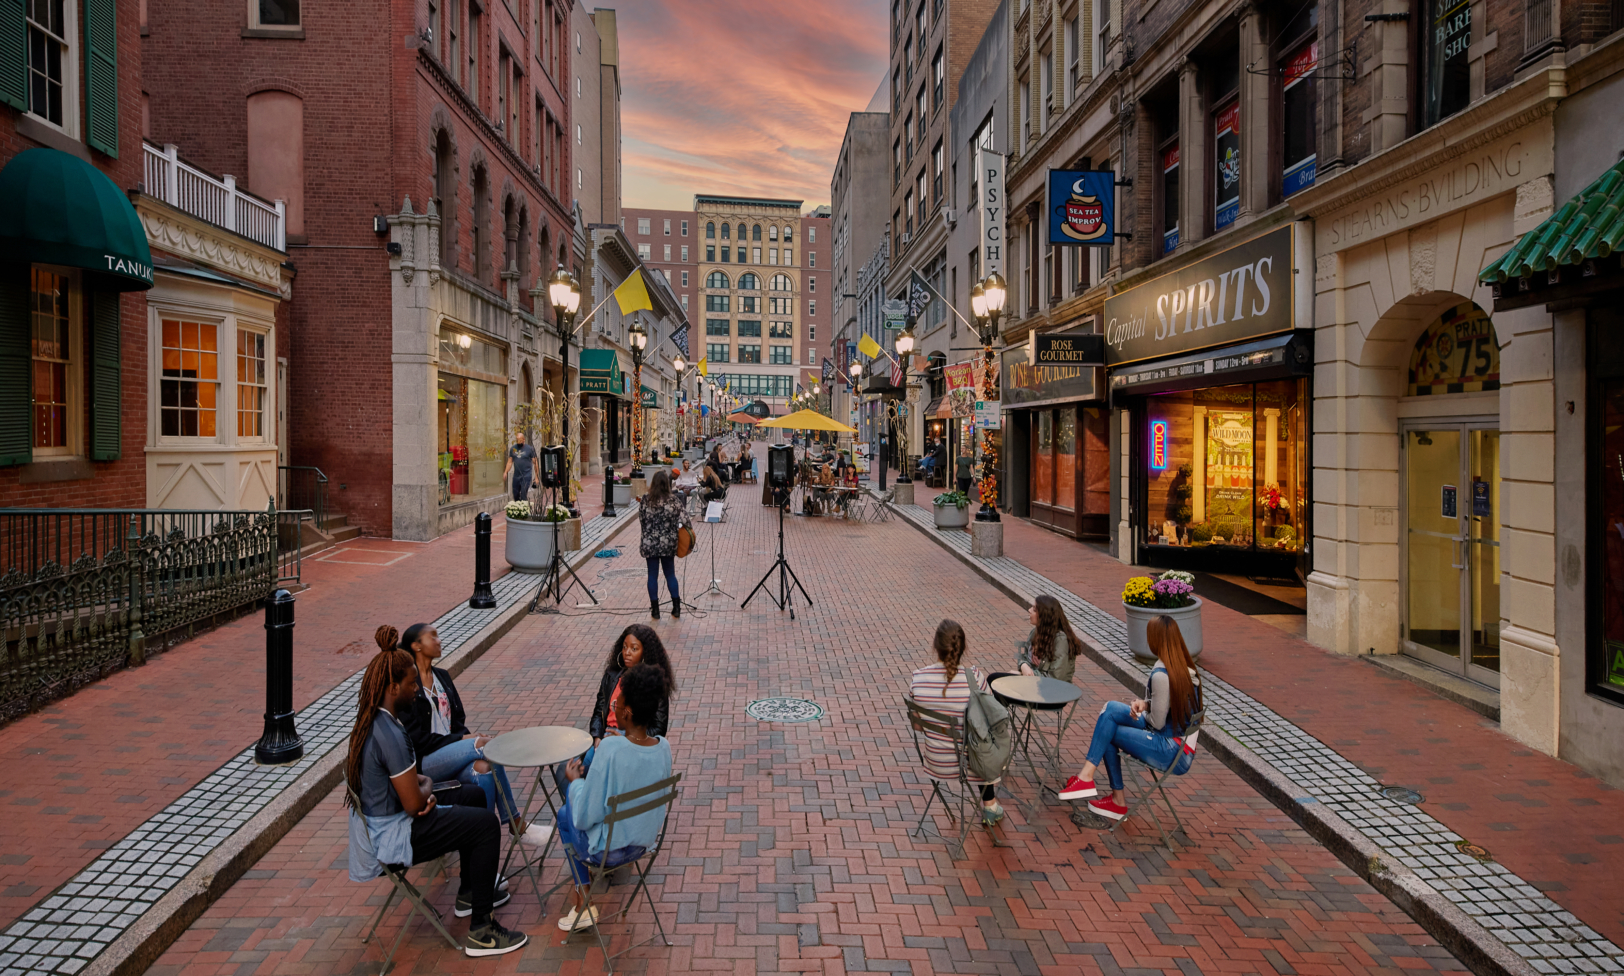 Pratt Street at dusk with a musician and several tables of people enjoying the atmosphere.